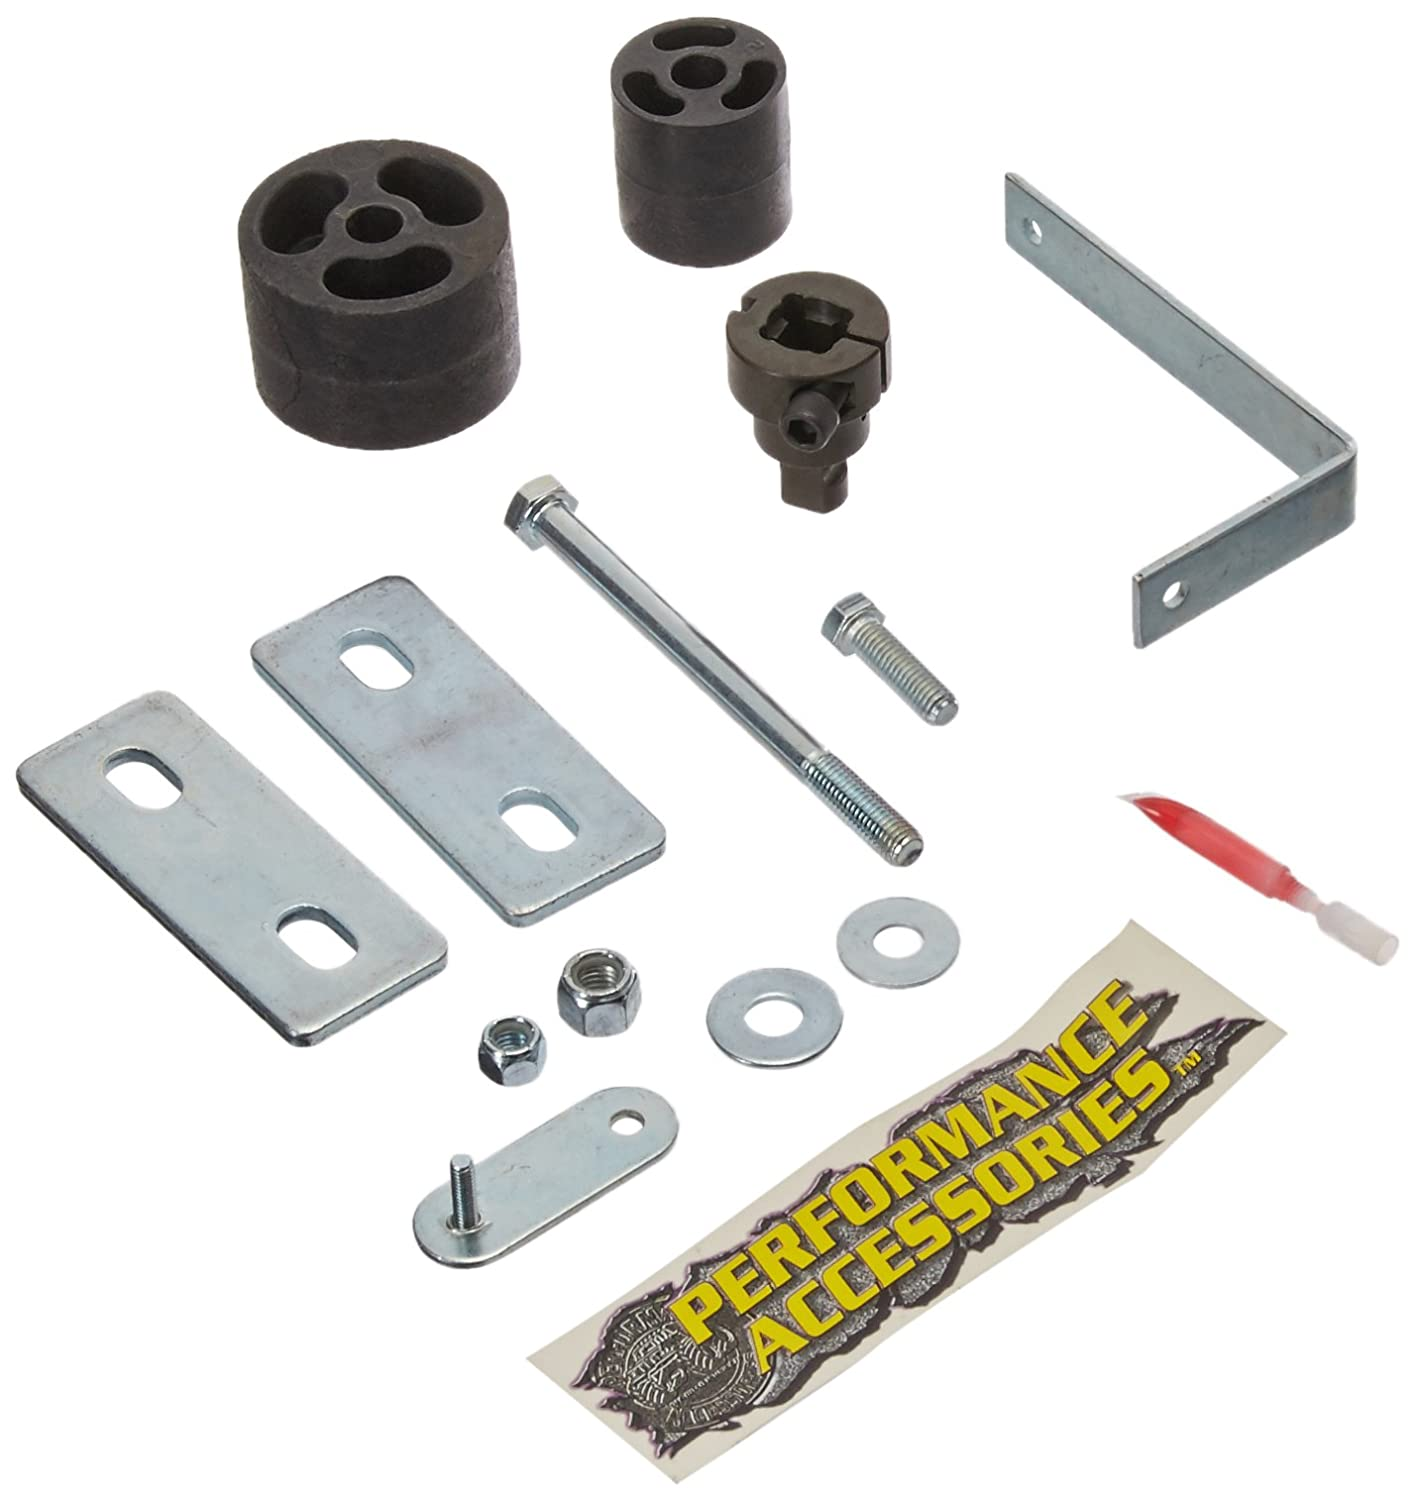 Performance Accessories PA822 fits 1992 to 1997 Made in America Ford F-150//F-250//F-350 Gas 2WD and 4WD 2 Body Lift Kit